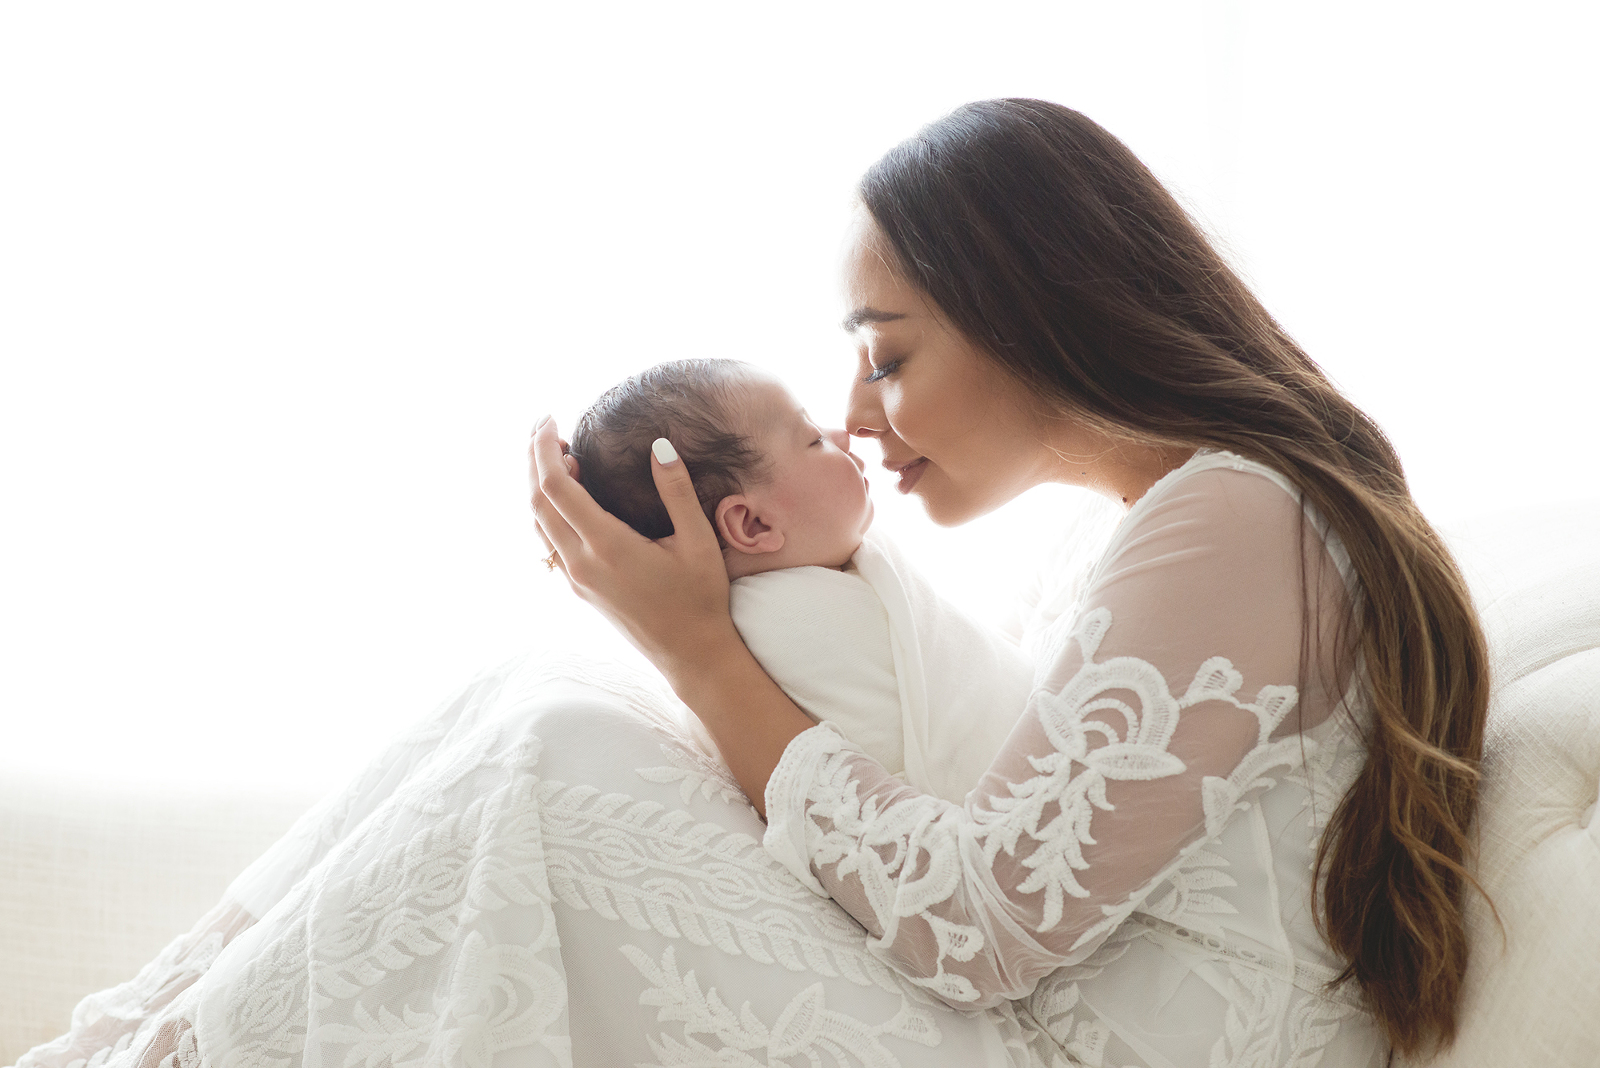 3 month old baby photos with mom in white lace dress